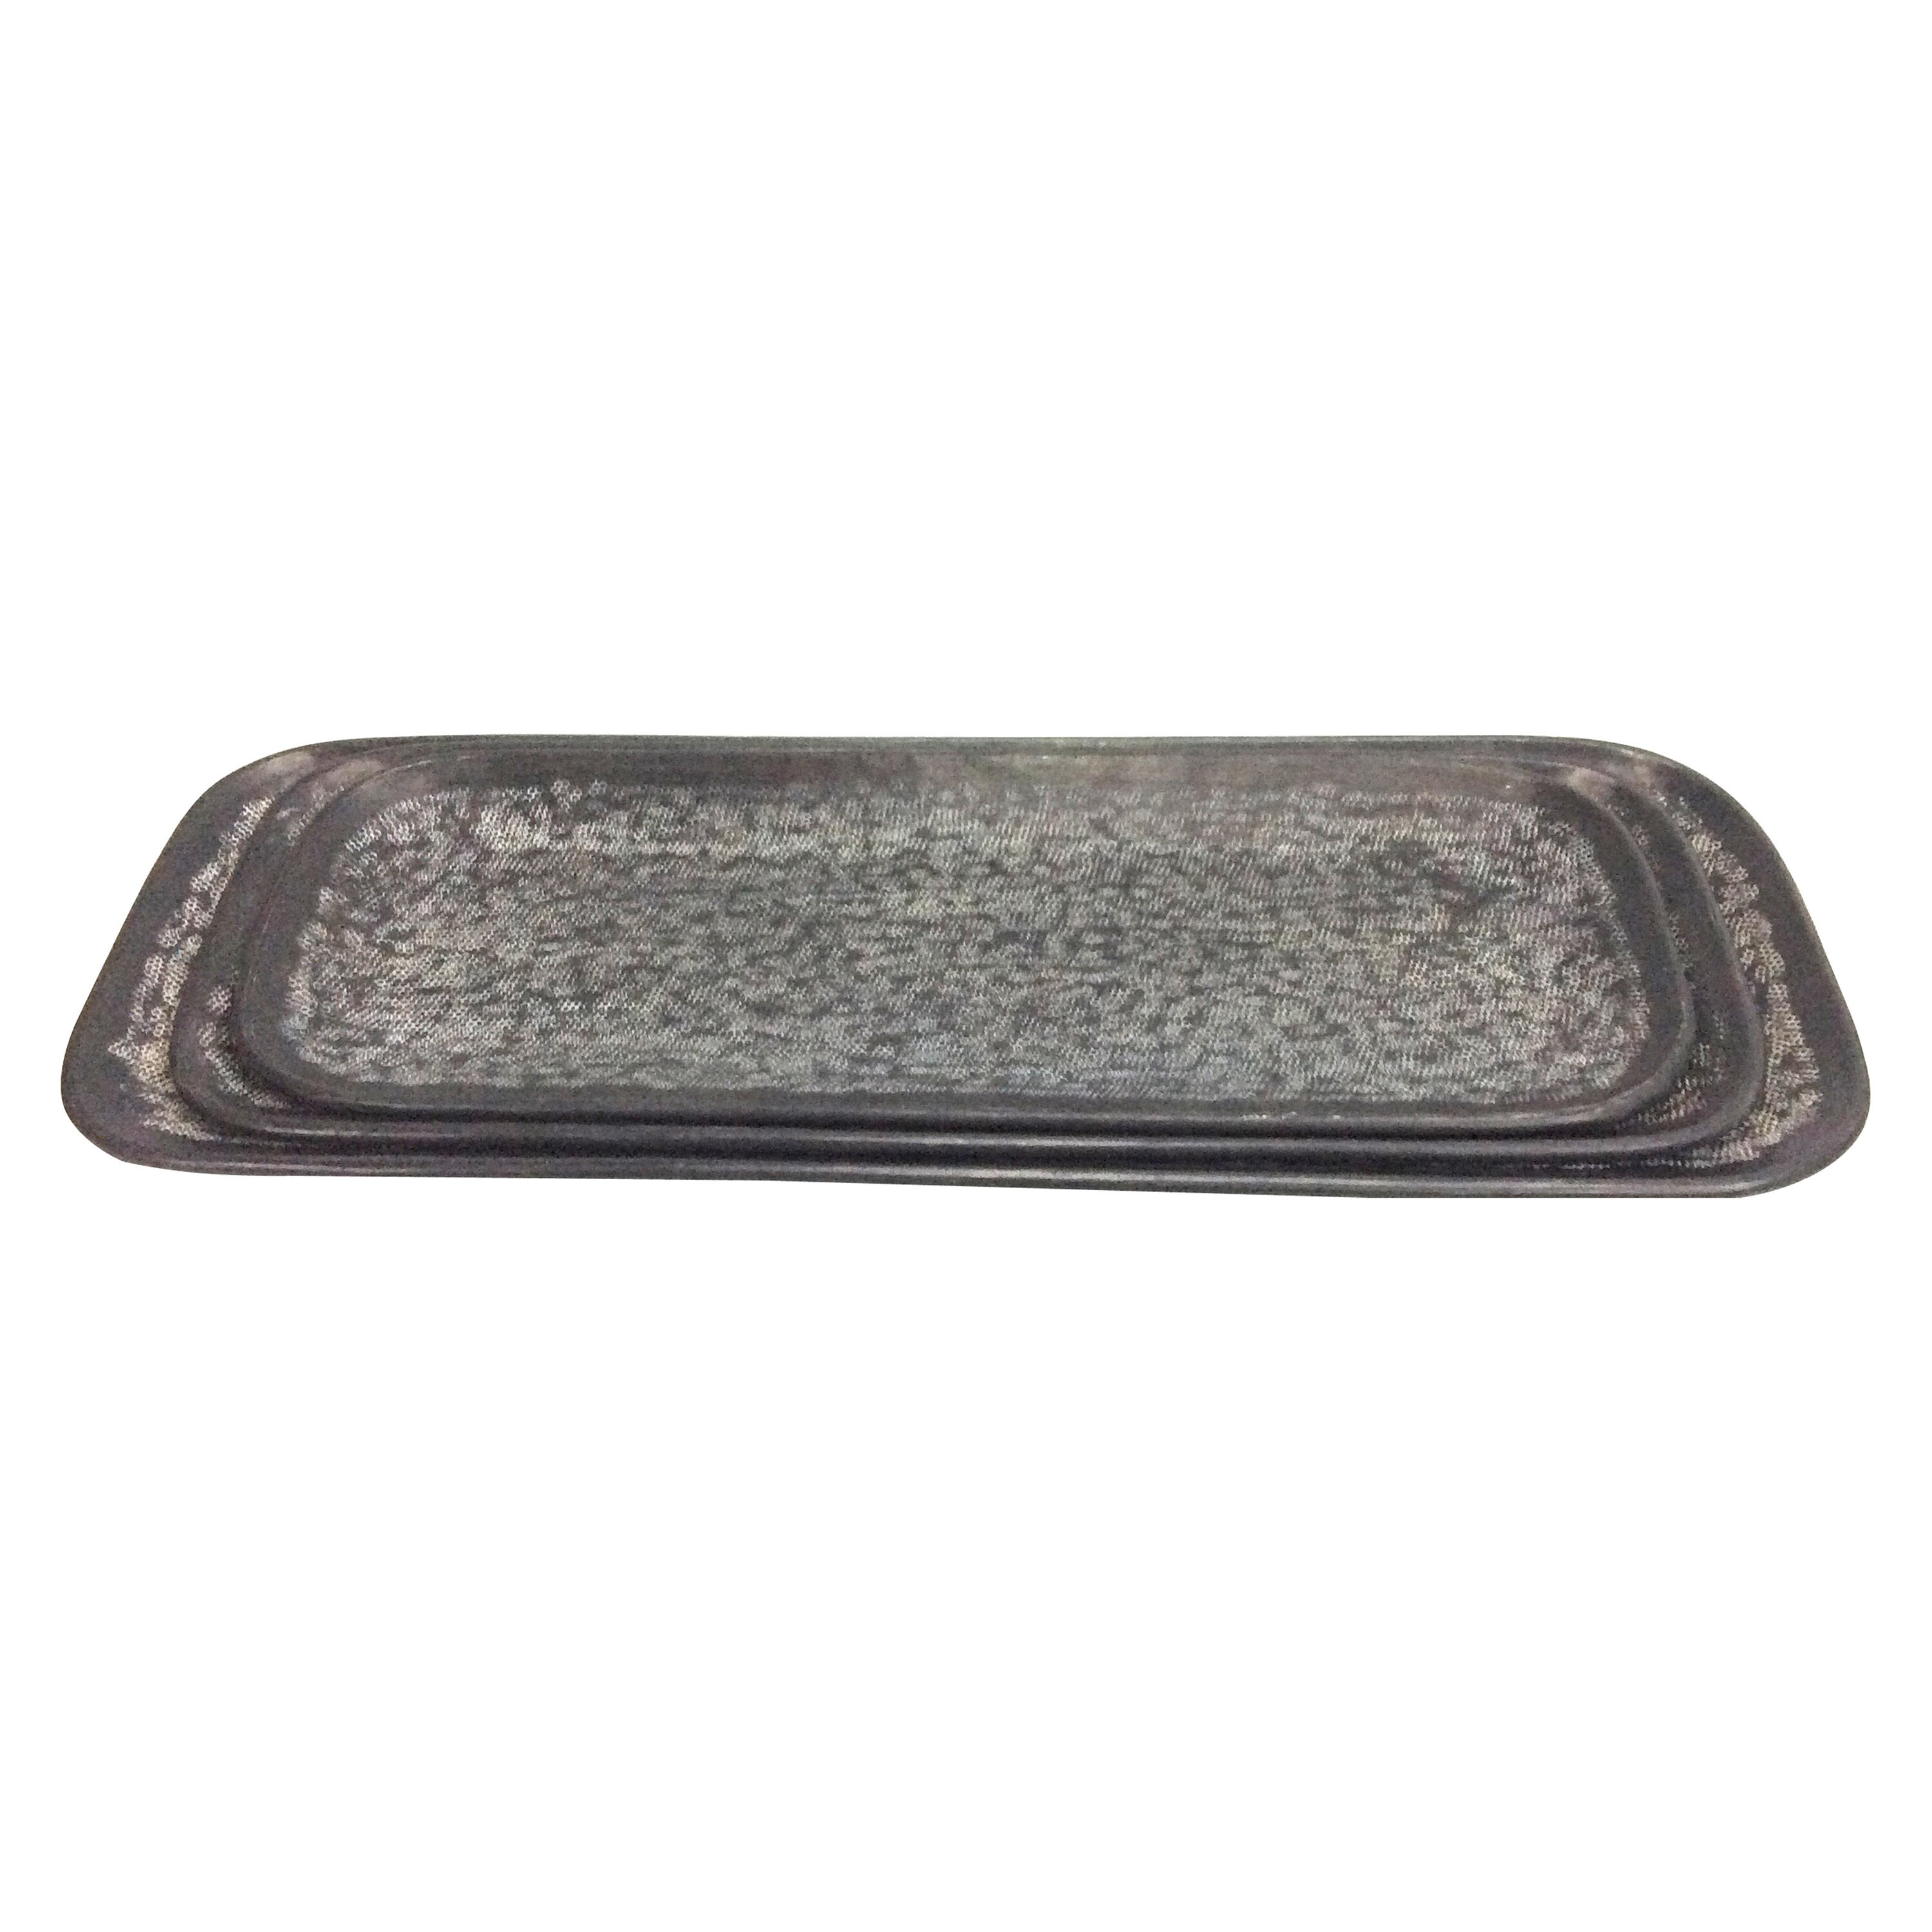 Decorative Metal Tray Round Decorative Tray With Mirrored Finish Product Details Page